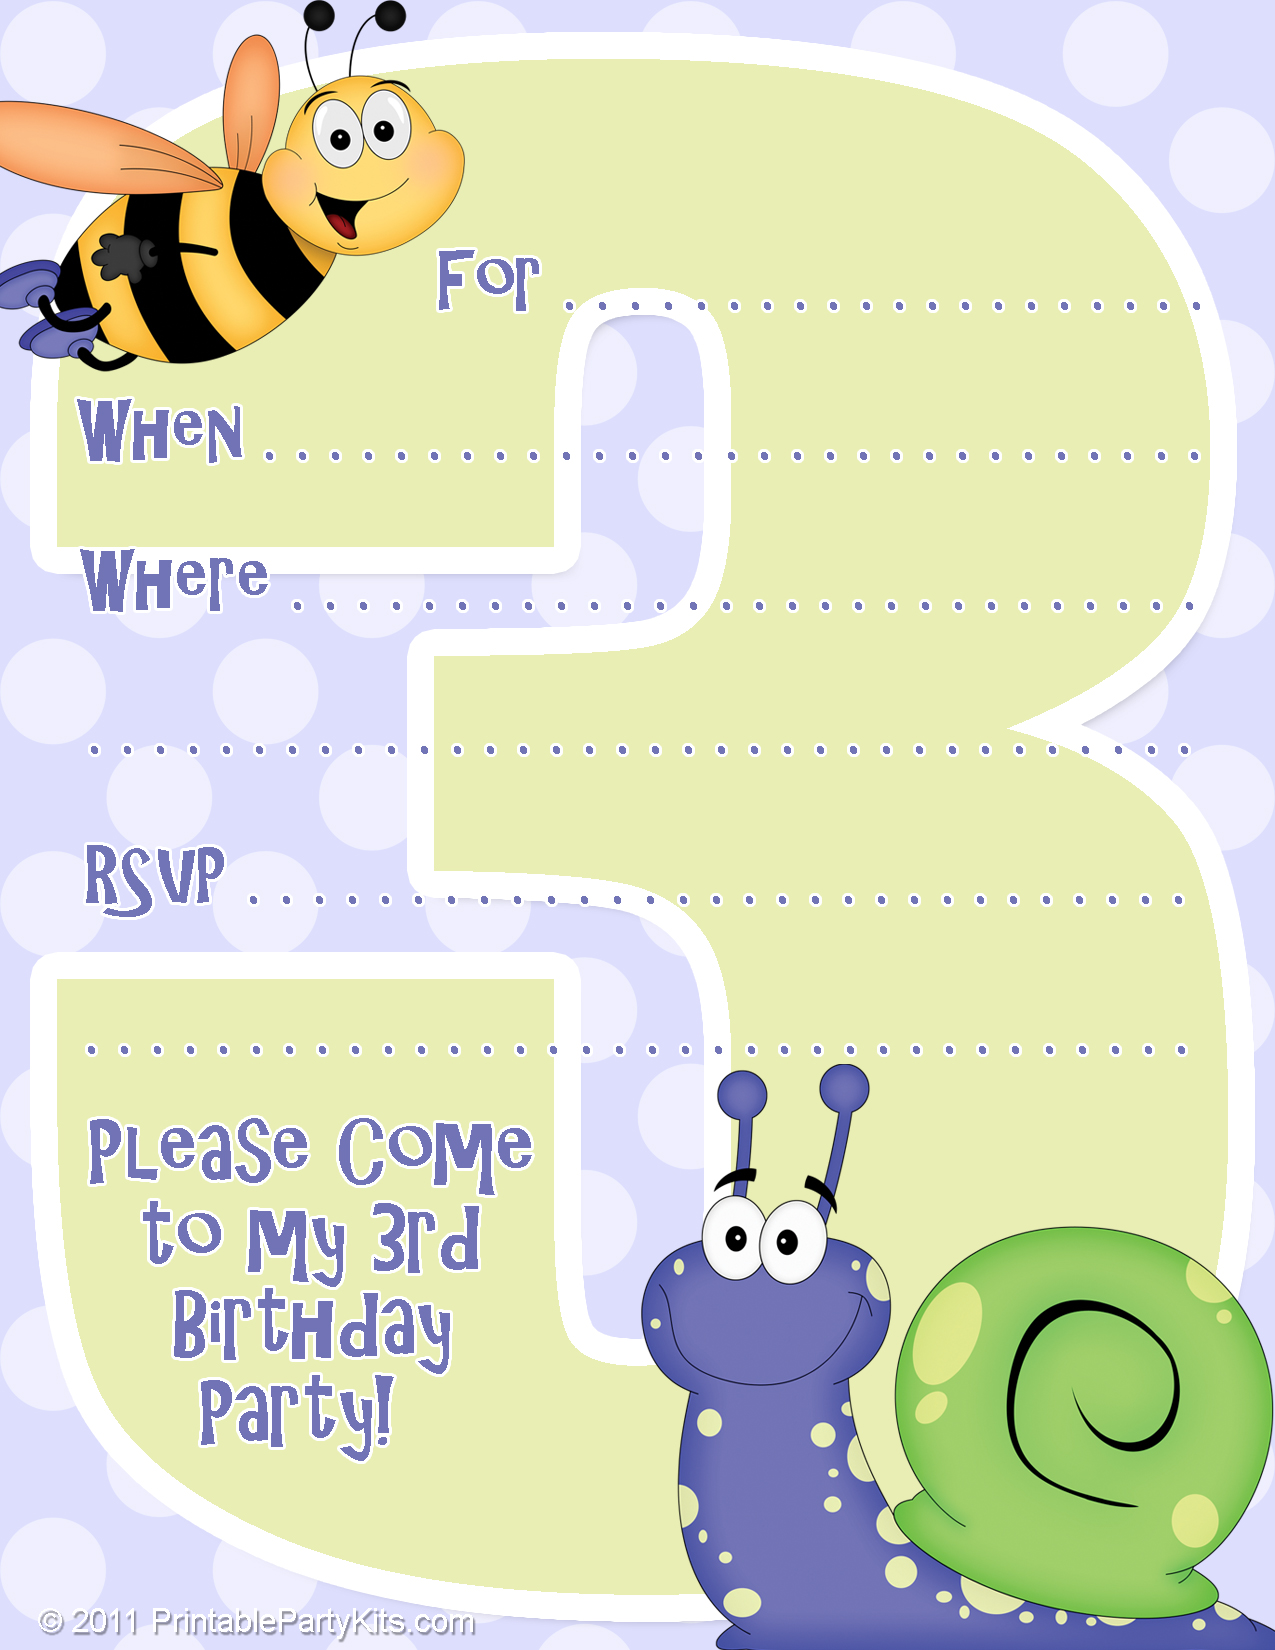 3rd Birthday Party Invitation Template | Printable Party Kits